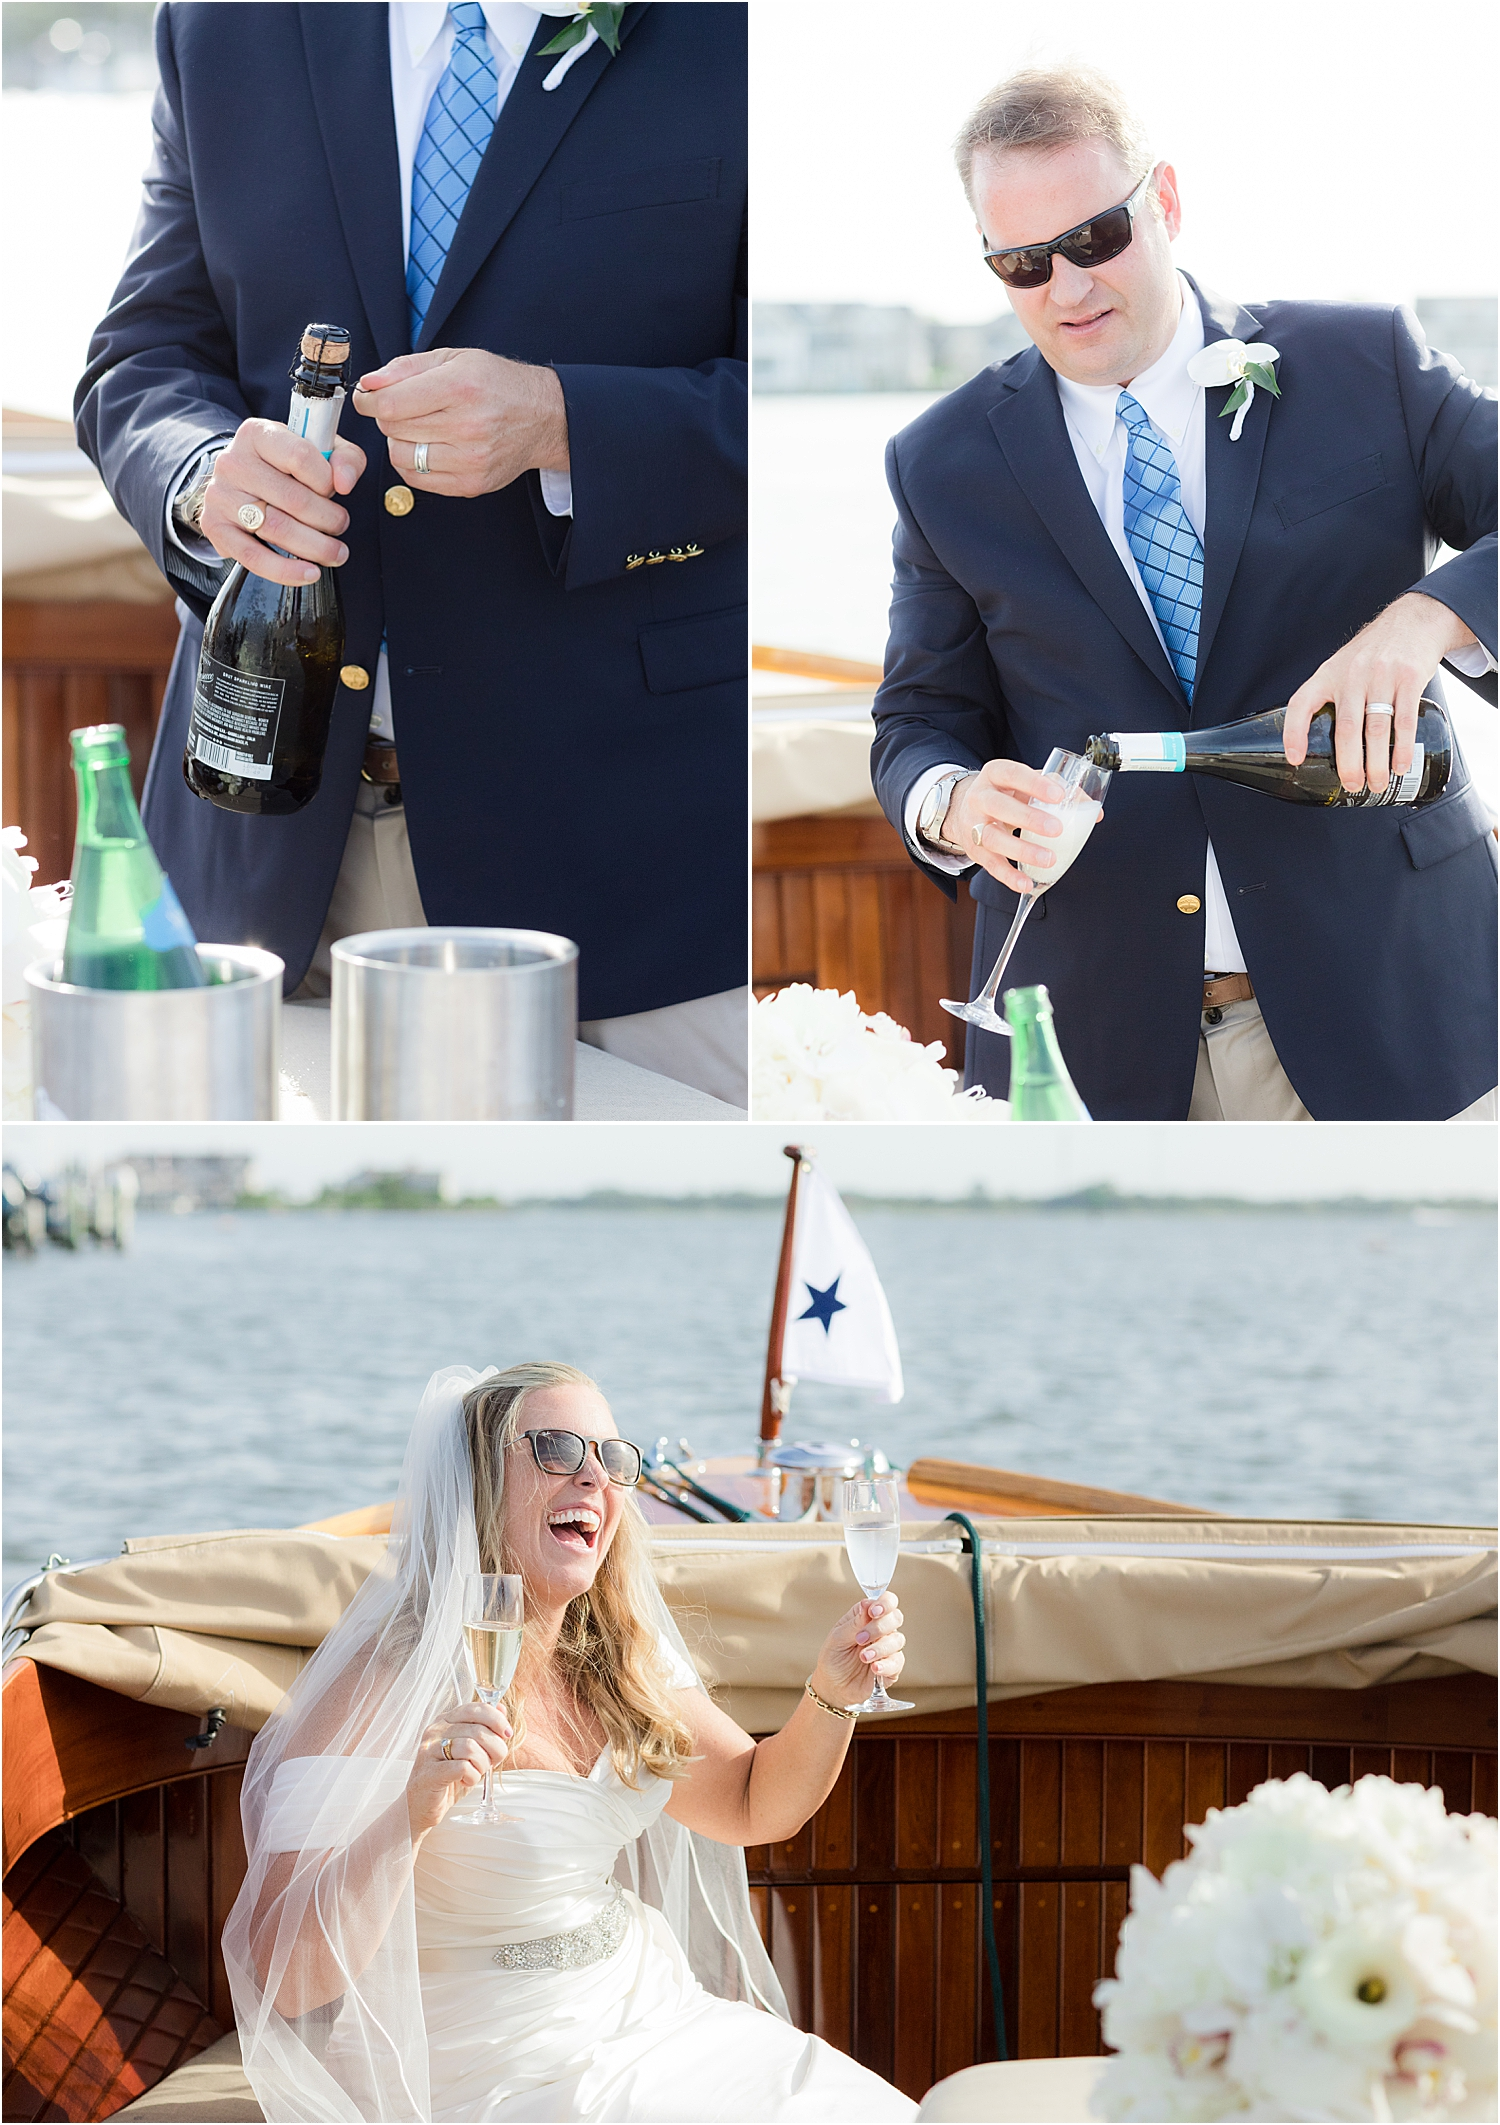 boat ride with bride and groom at bay head yacht club wedding